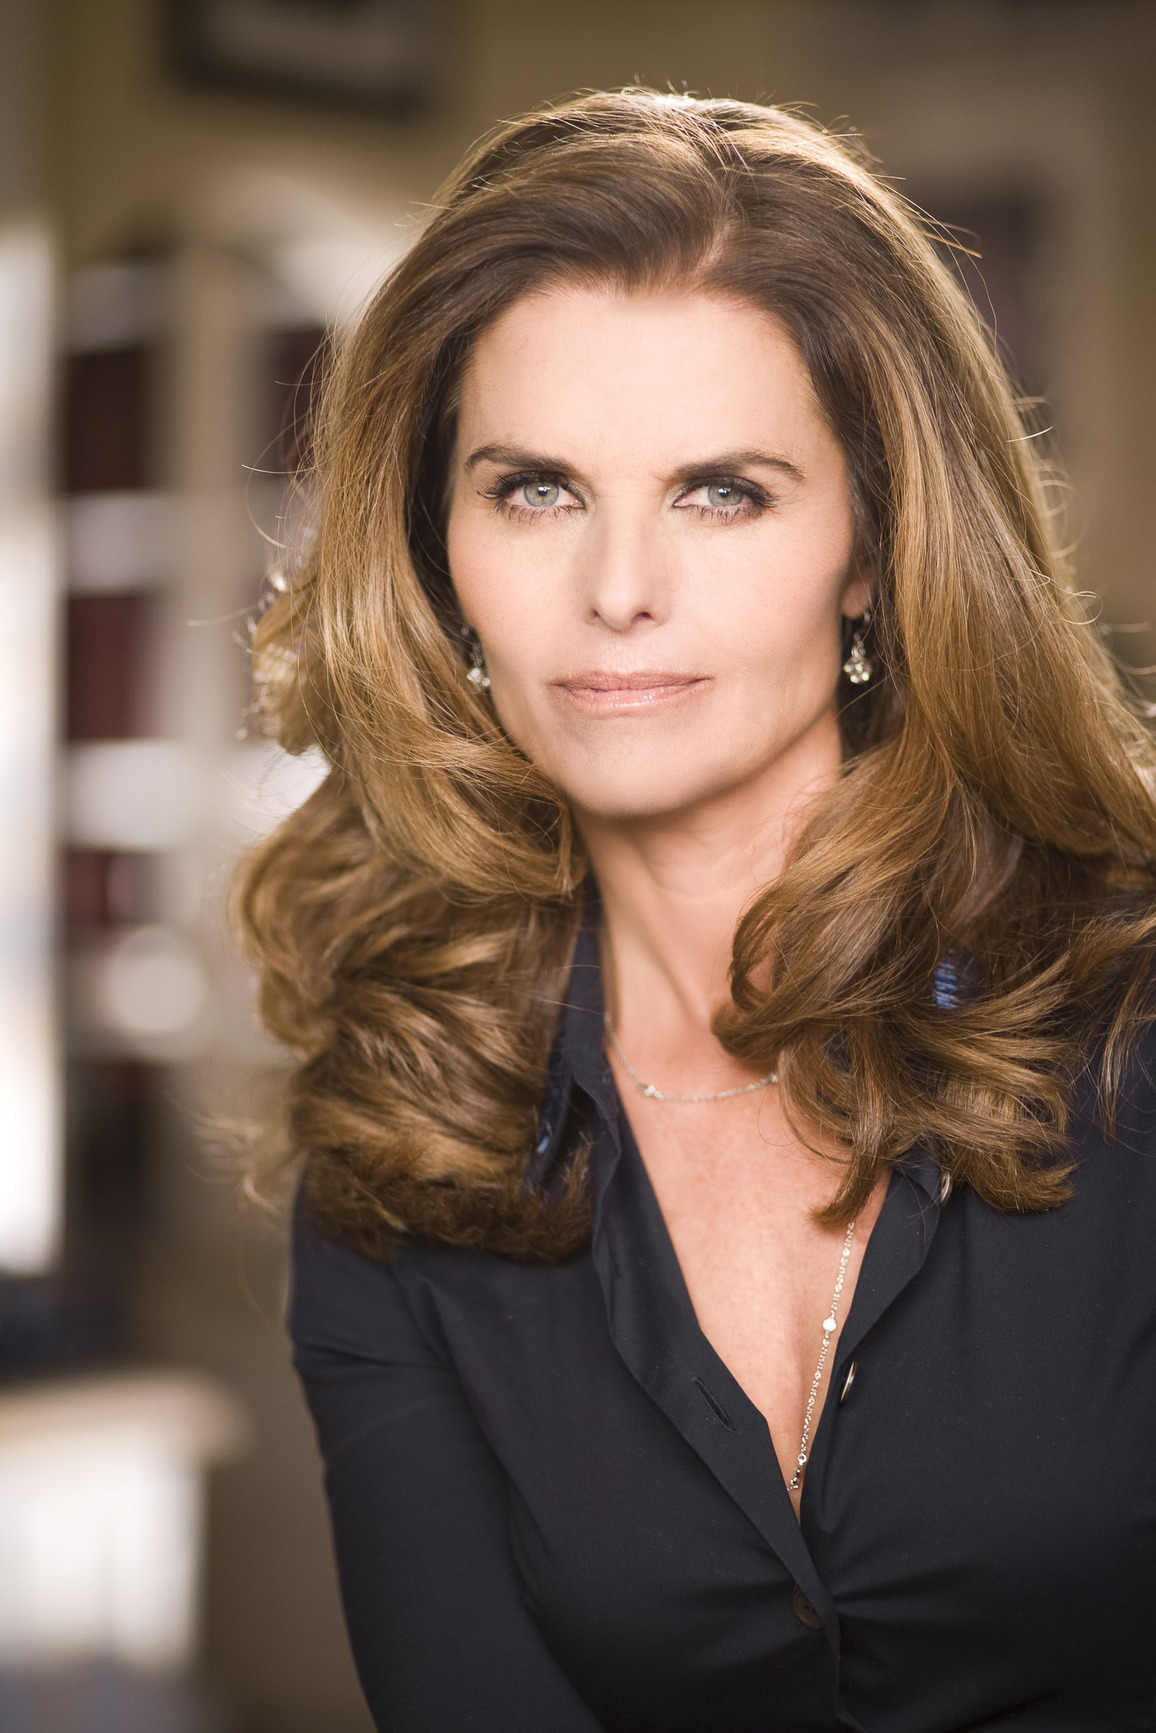 HBO - The Alzheimer's Disease Children's Project